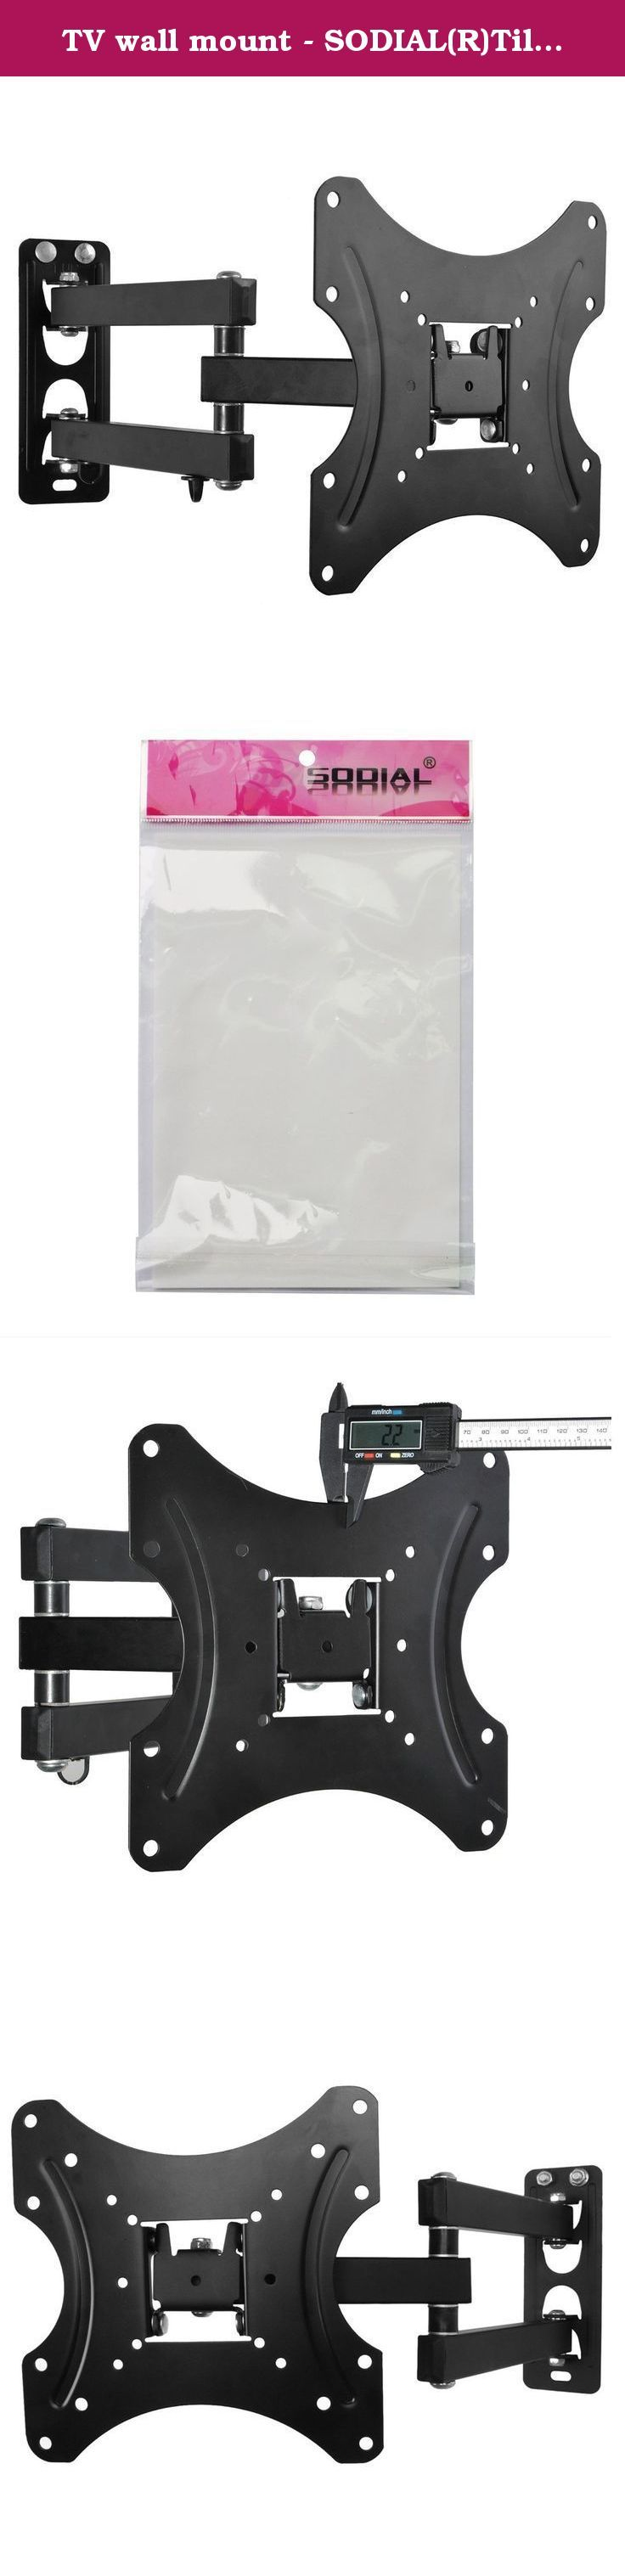 TV wall mount - SODIAL(R)Tilt Swivel Plasma LCD LED TV Wall Bracket Mount 10 26 30 32 37 38 40 42inch. * SODIAL is a registered trademark. ONLY Authorized seller of SODIAL can sell under SODIAL listings. Our products will enhance your experience to unparalleled inspiration. SODIAL(R)Tilt Swivel Plasma LCD LED TV Wall Bracket Mount 10 26 30 32 37 38 40 42inch Mount Dimensions(W*H): 220mm x 220mm Vesa Size: 200x200mm, 200x100mm, 150x150mm,100x100mm, 75x75mm Fitting Hole Distance(W*H)…